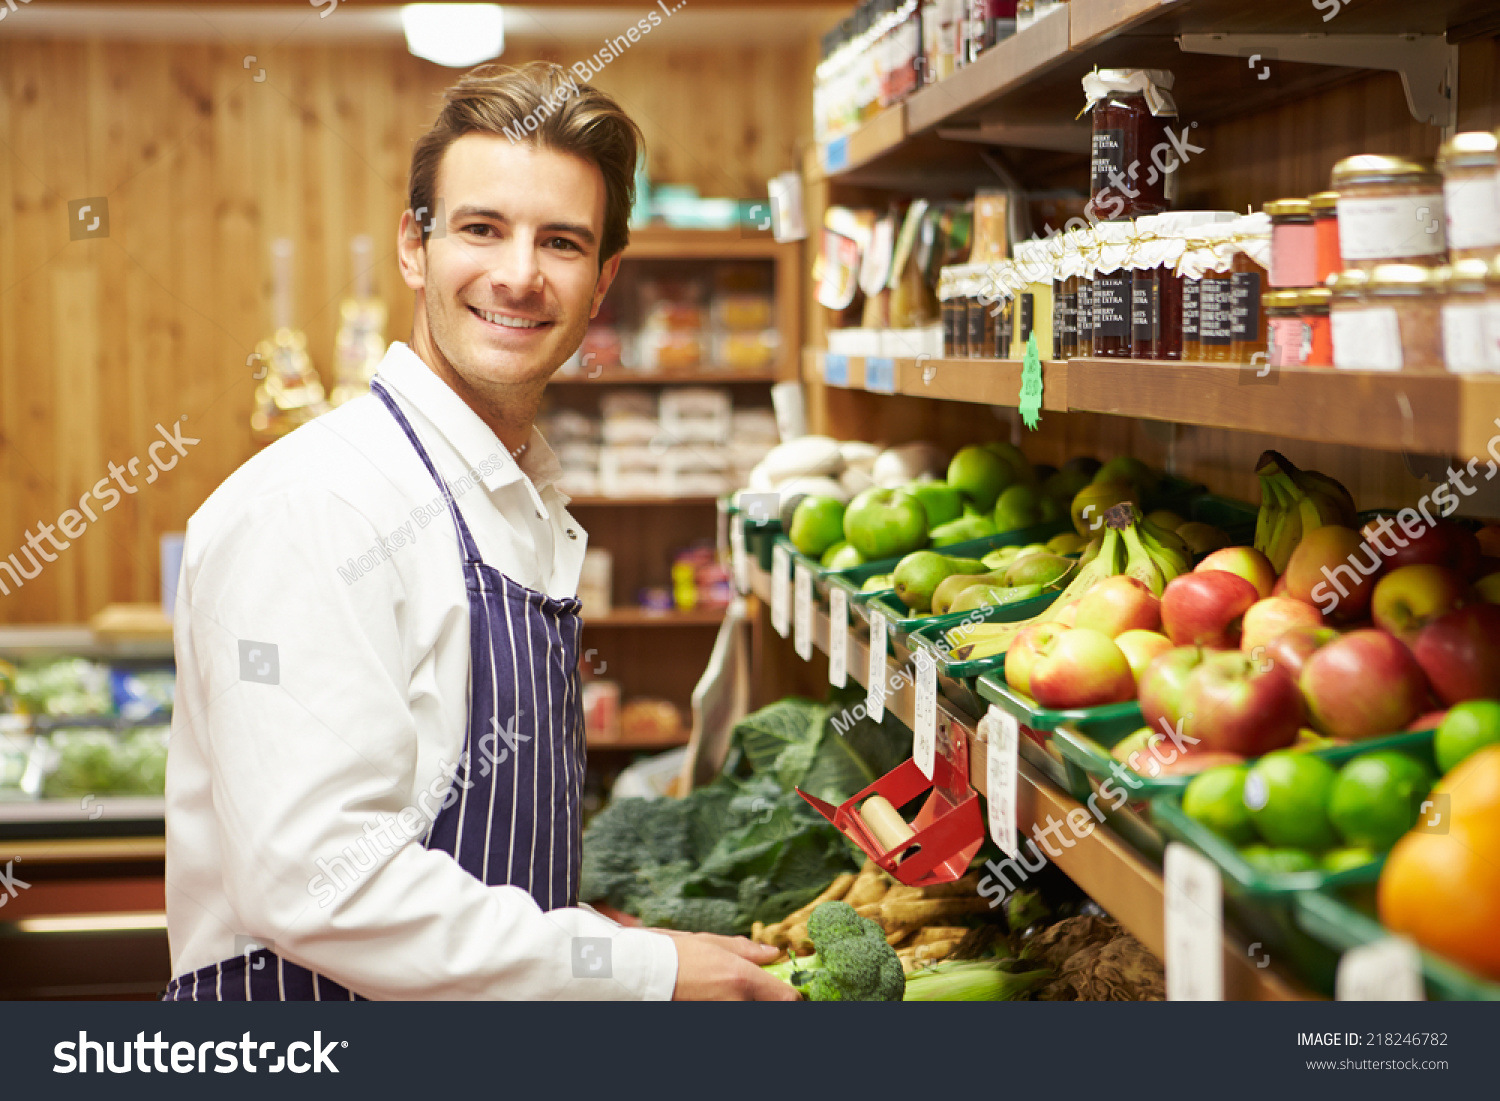 male s assistant at vegetable counter of farm shop stock photo save to a lightbox